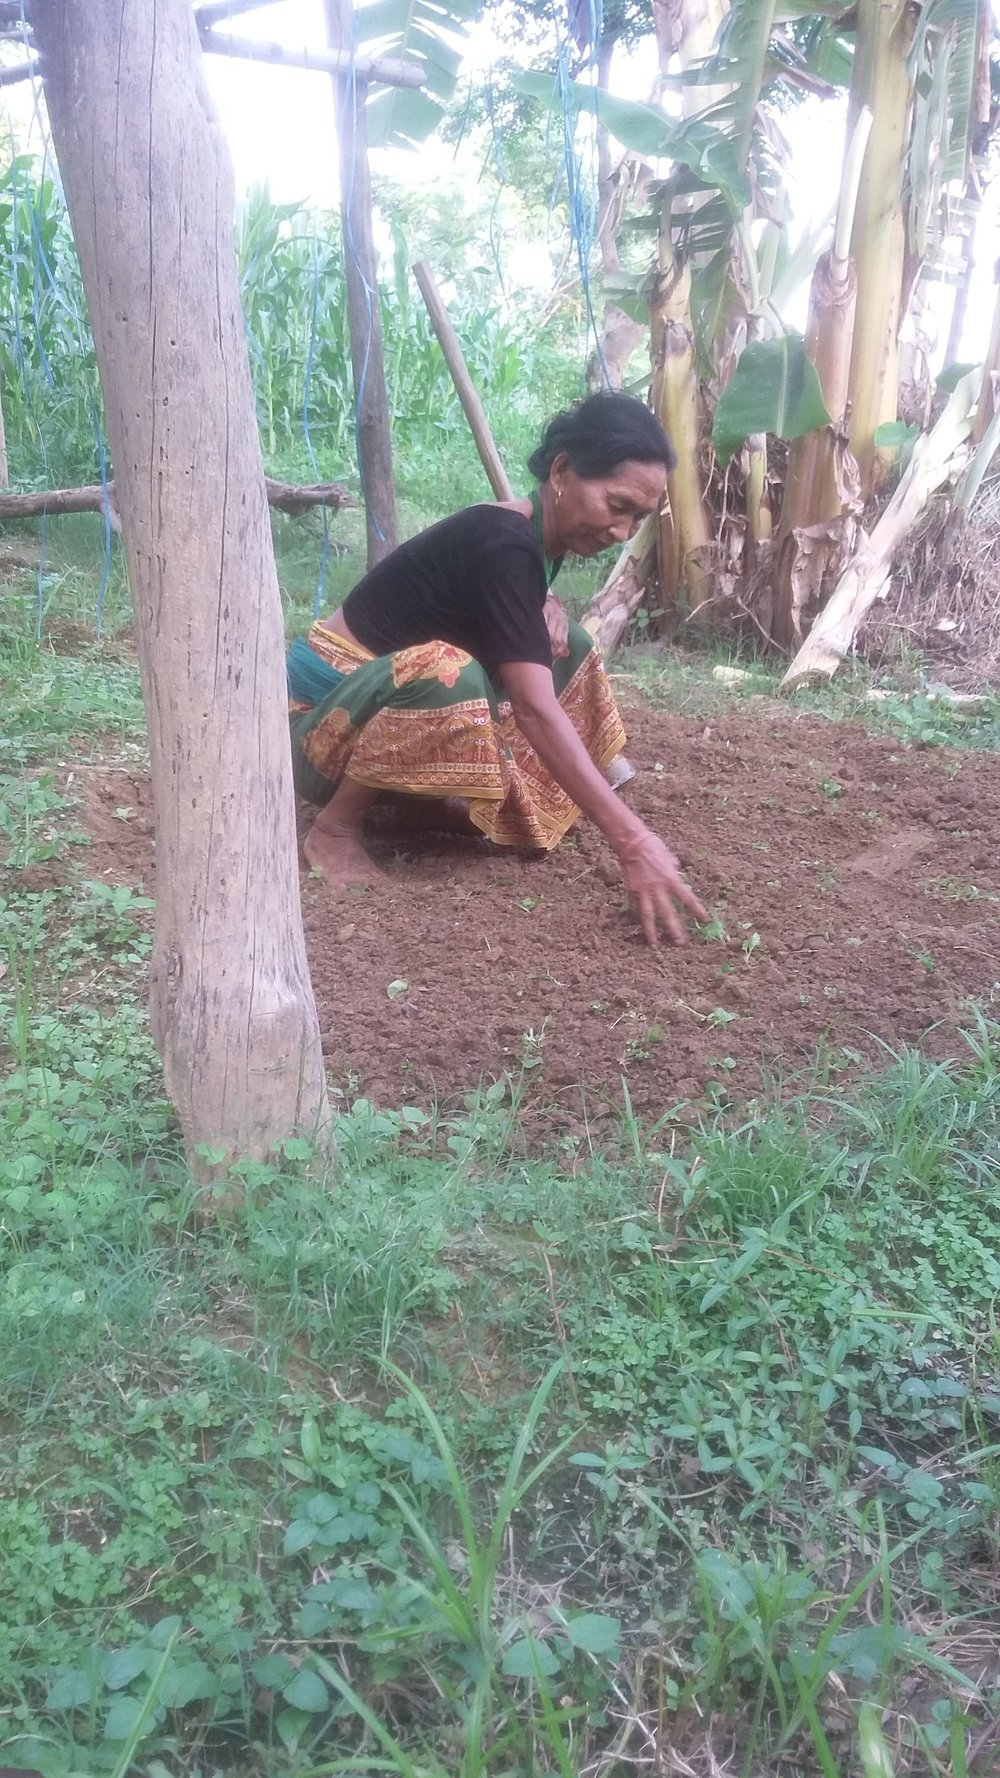 Tej Kumari Thada tending seedlings on her farm in Dhahaba.